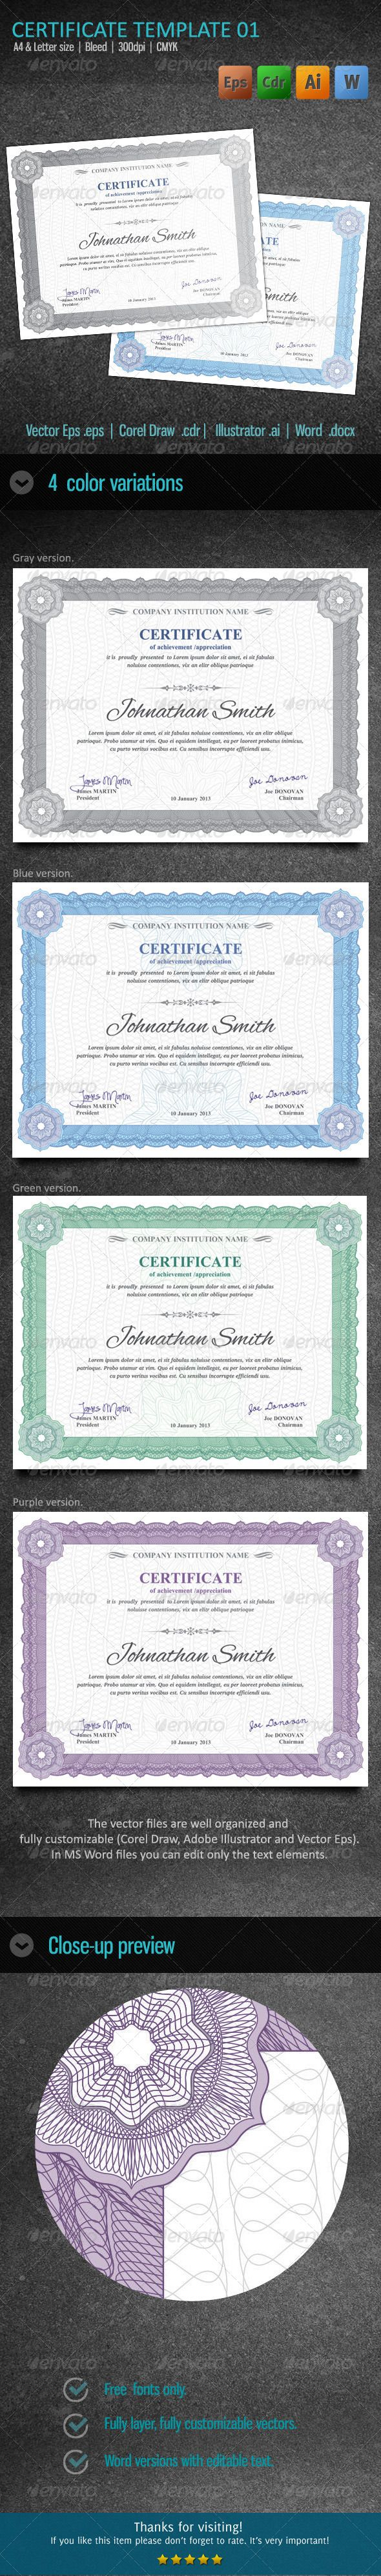 140 best certificate templates designs images on pinterest certificate 01 yelopaper Gallery